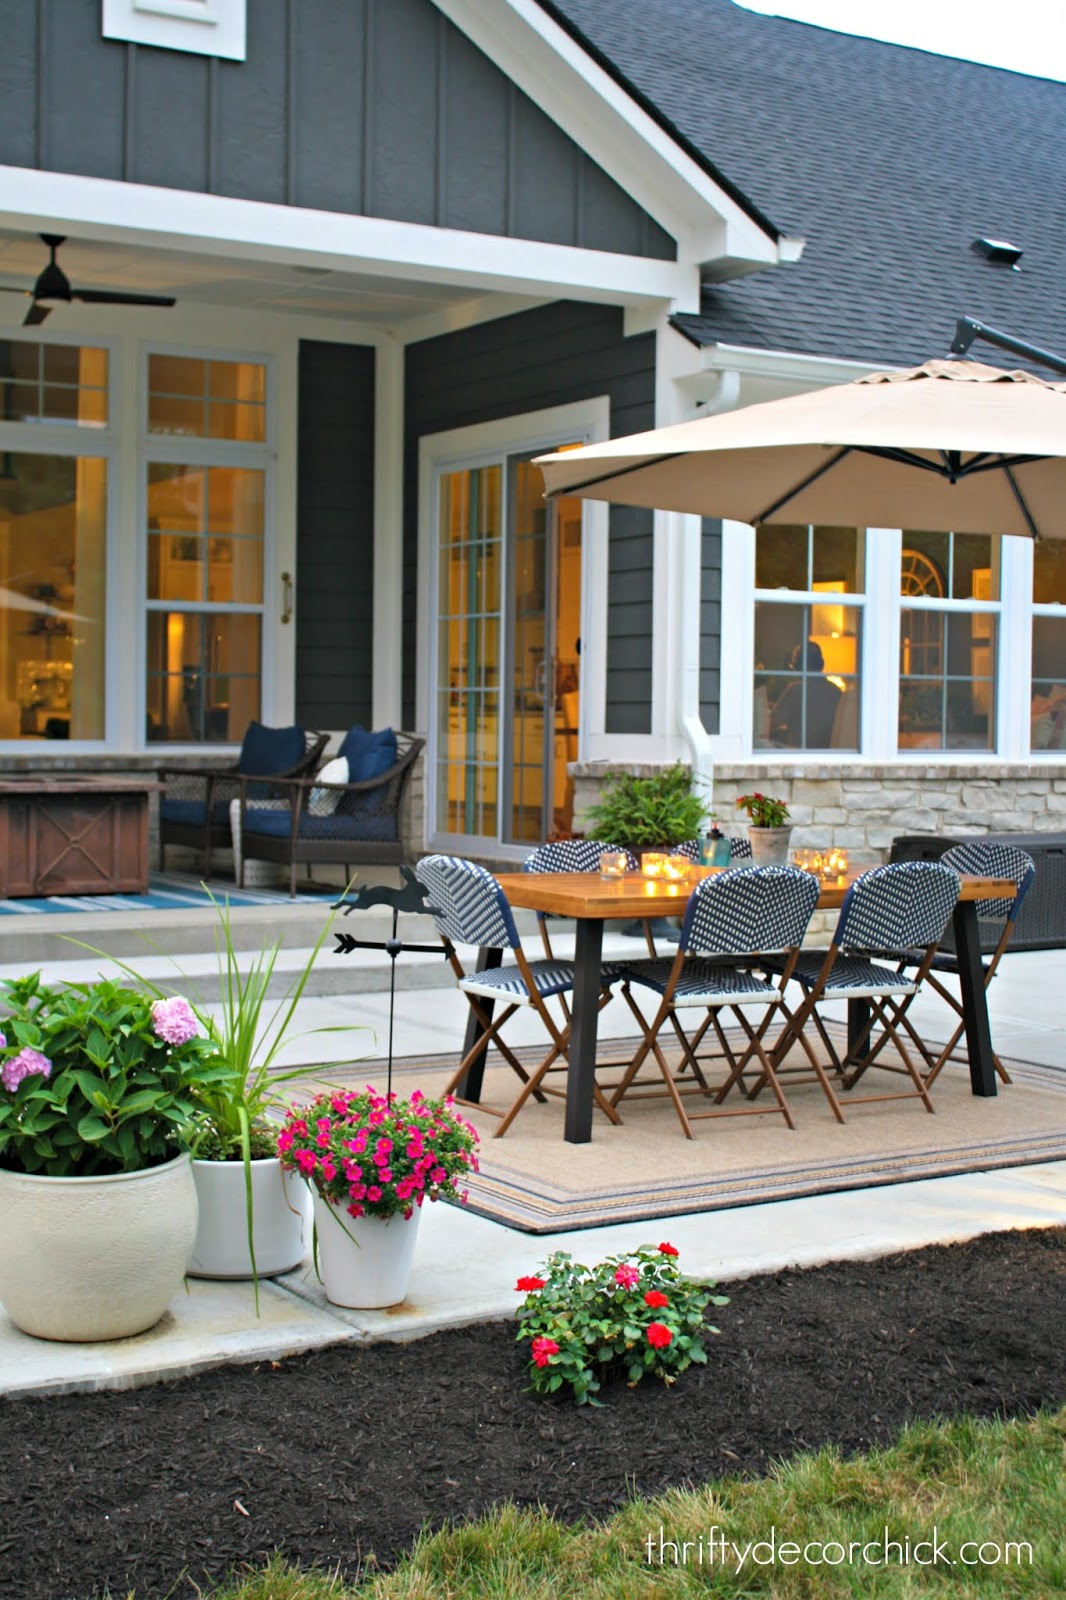 Outdoor dining space on open patio